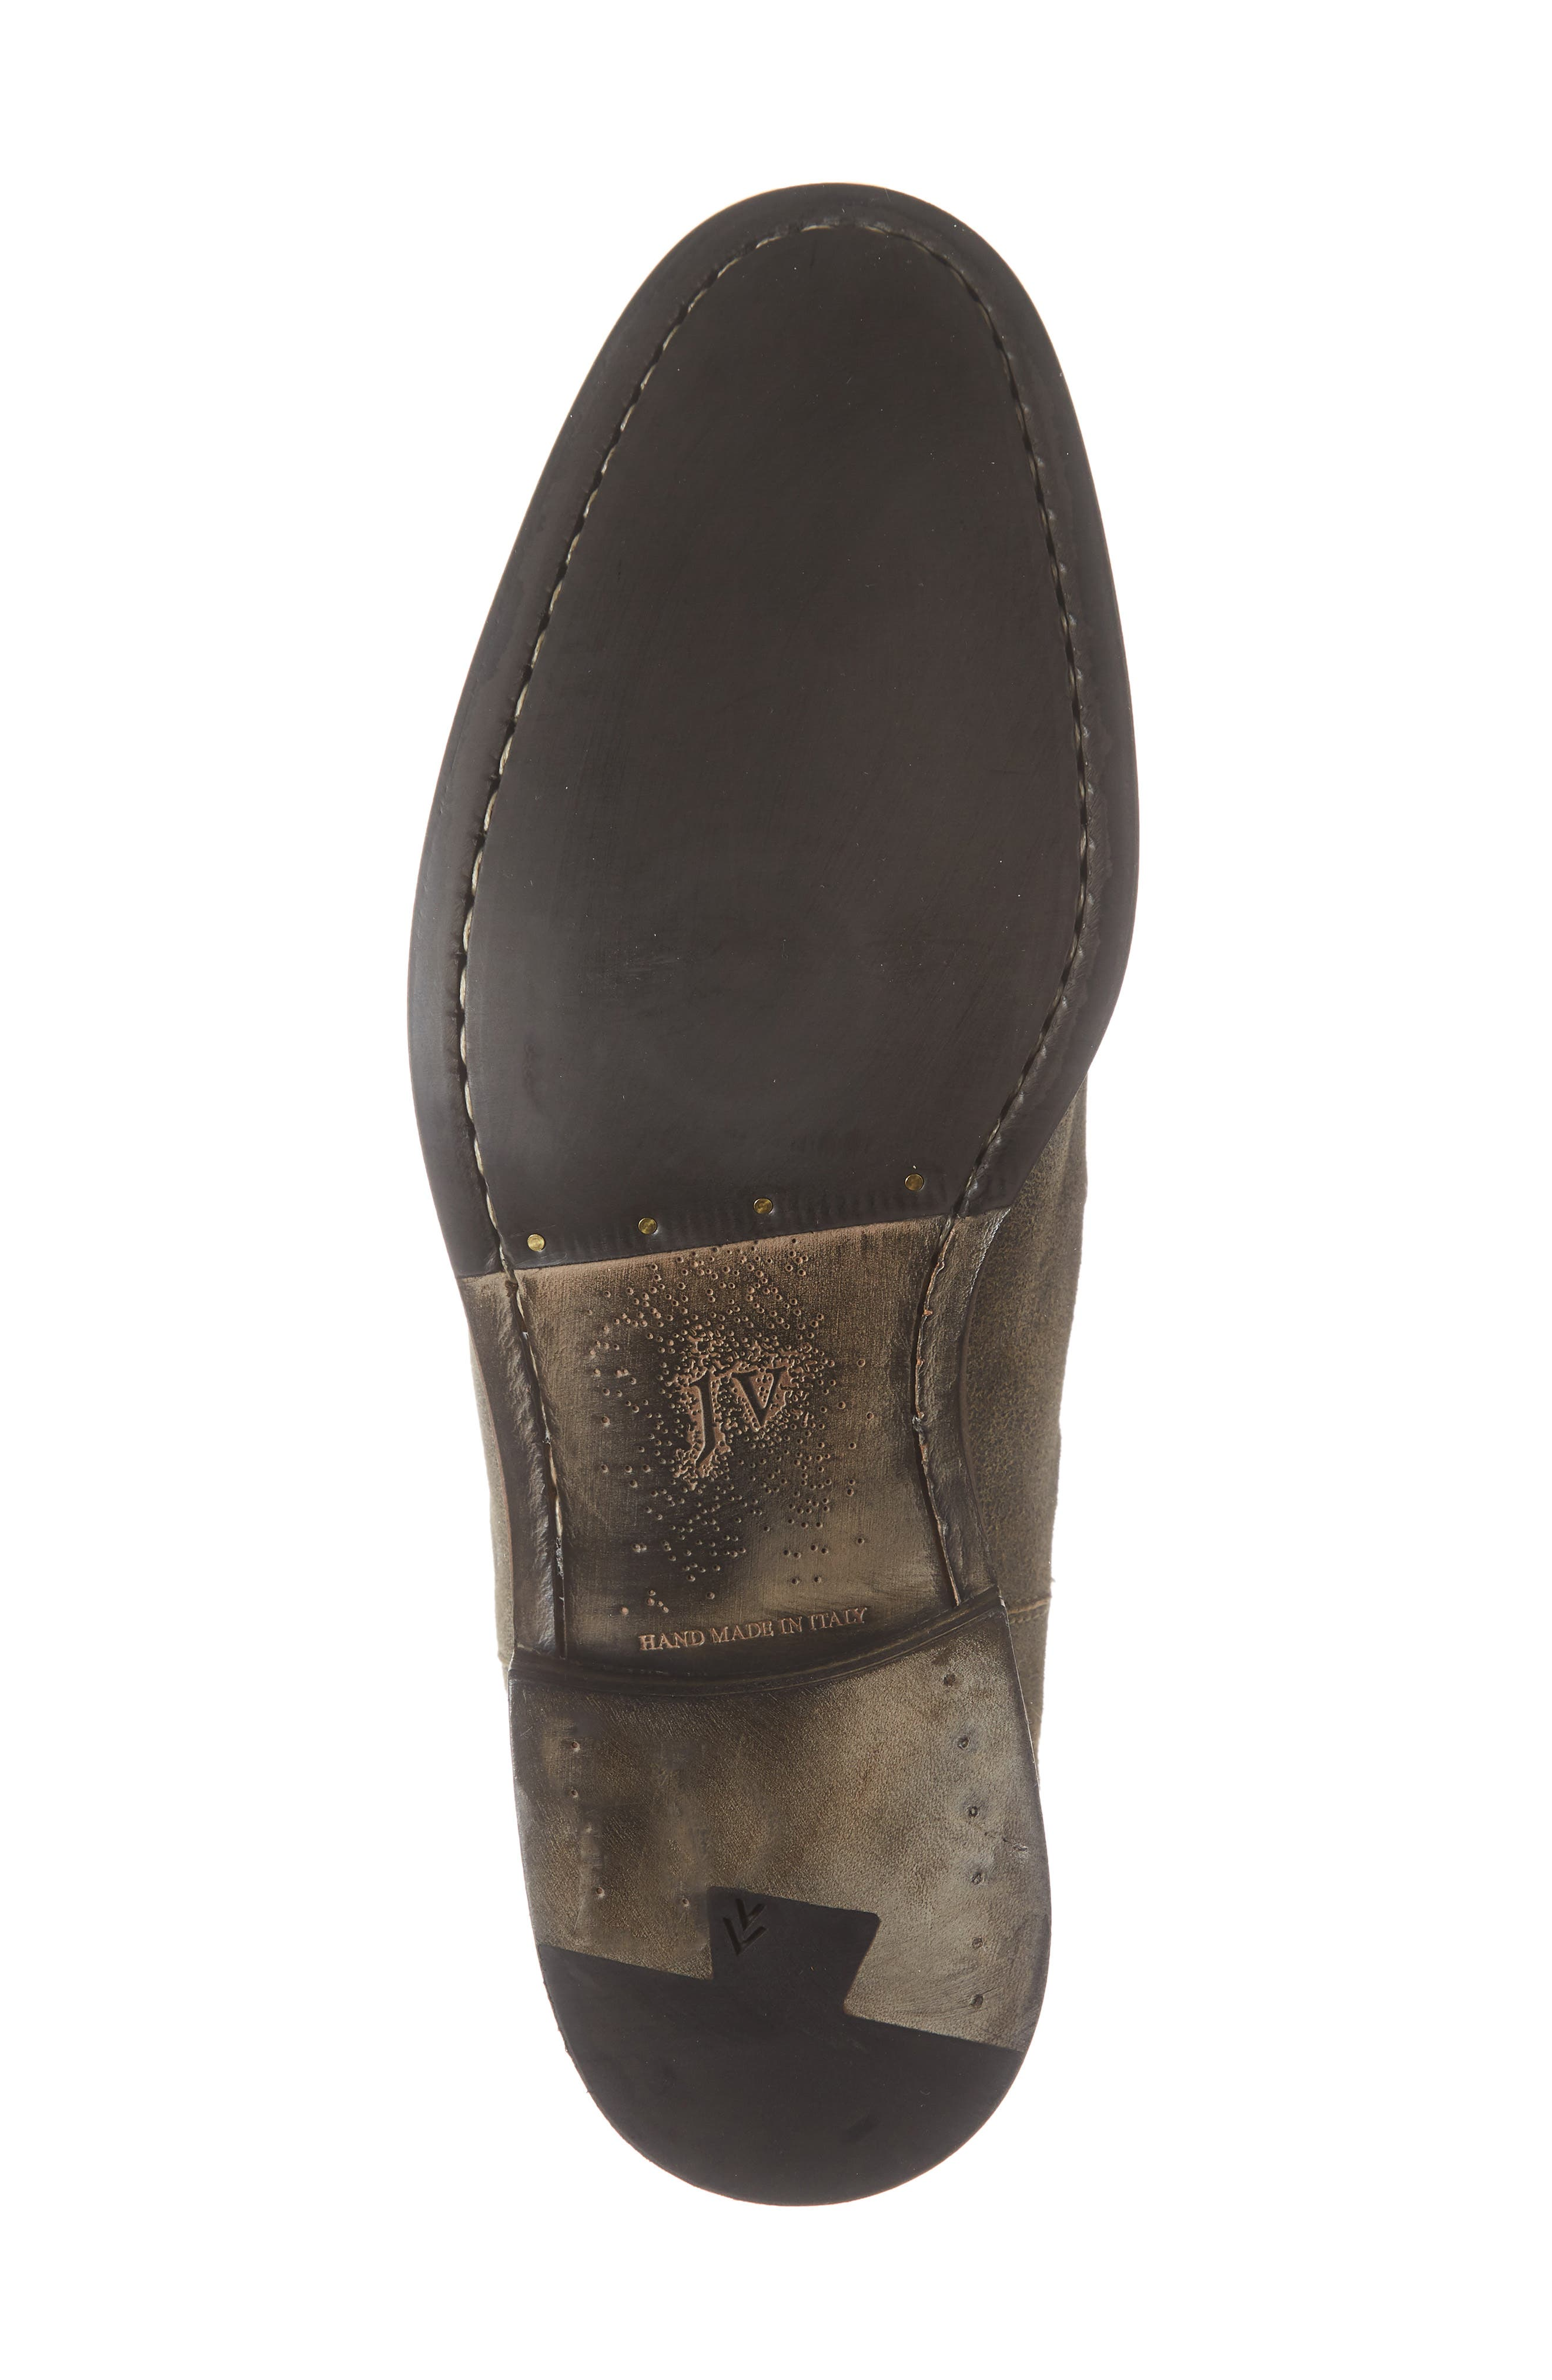 JOHN VARVATOS COLLECTION, Fleetwood Chelsea Boot, Alternate thumbnail 6, color, 237